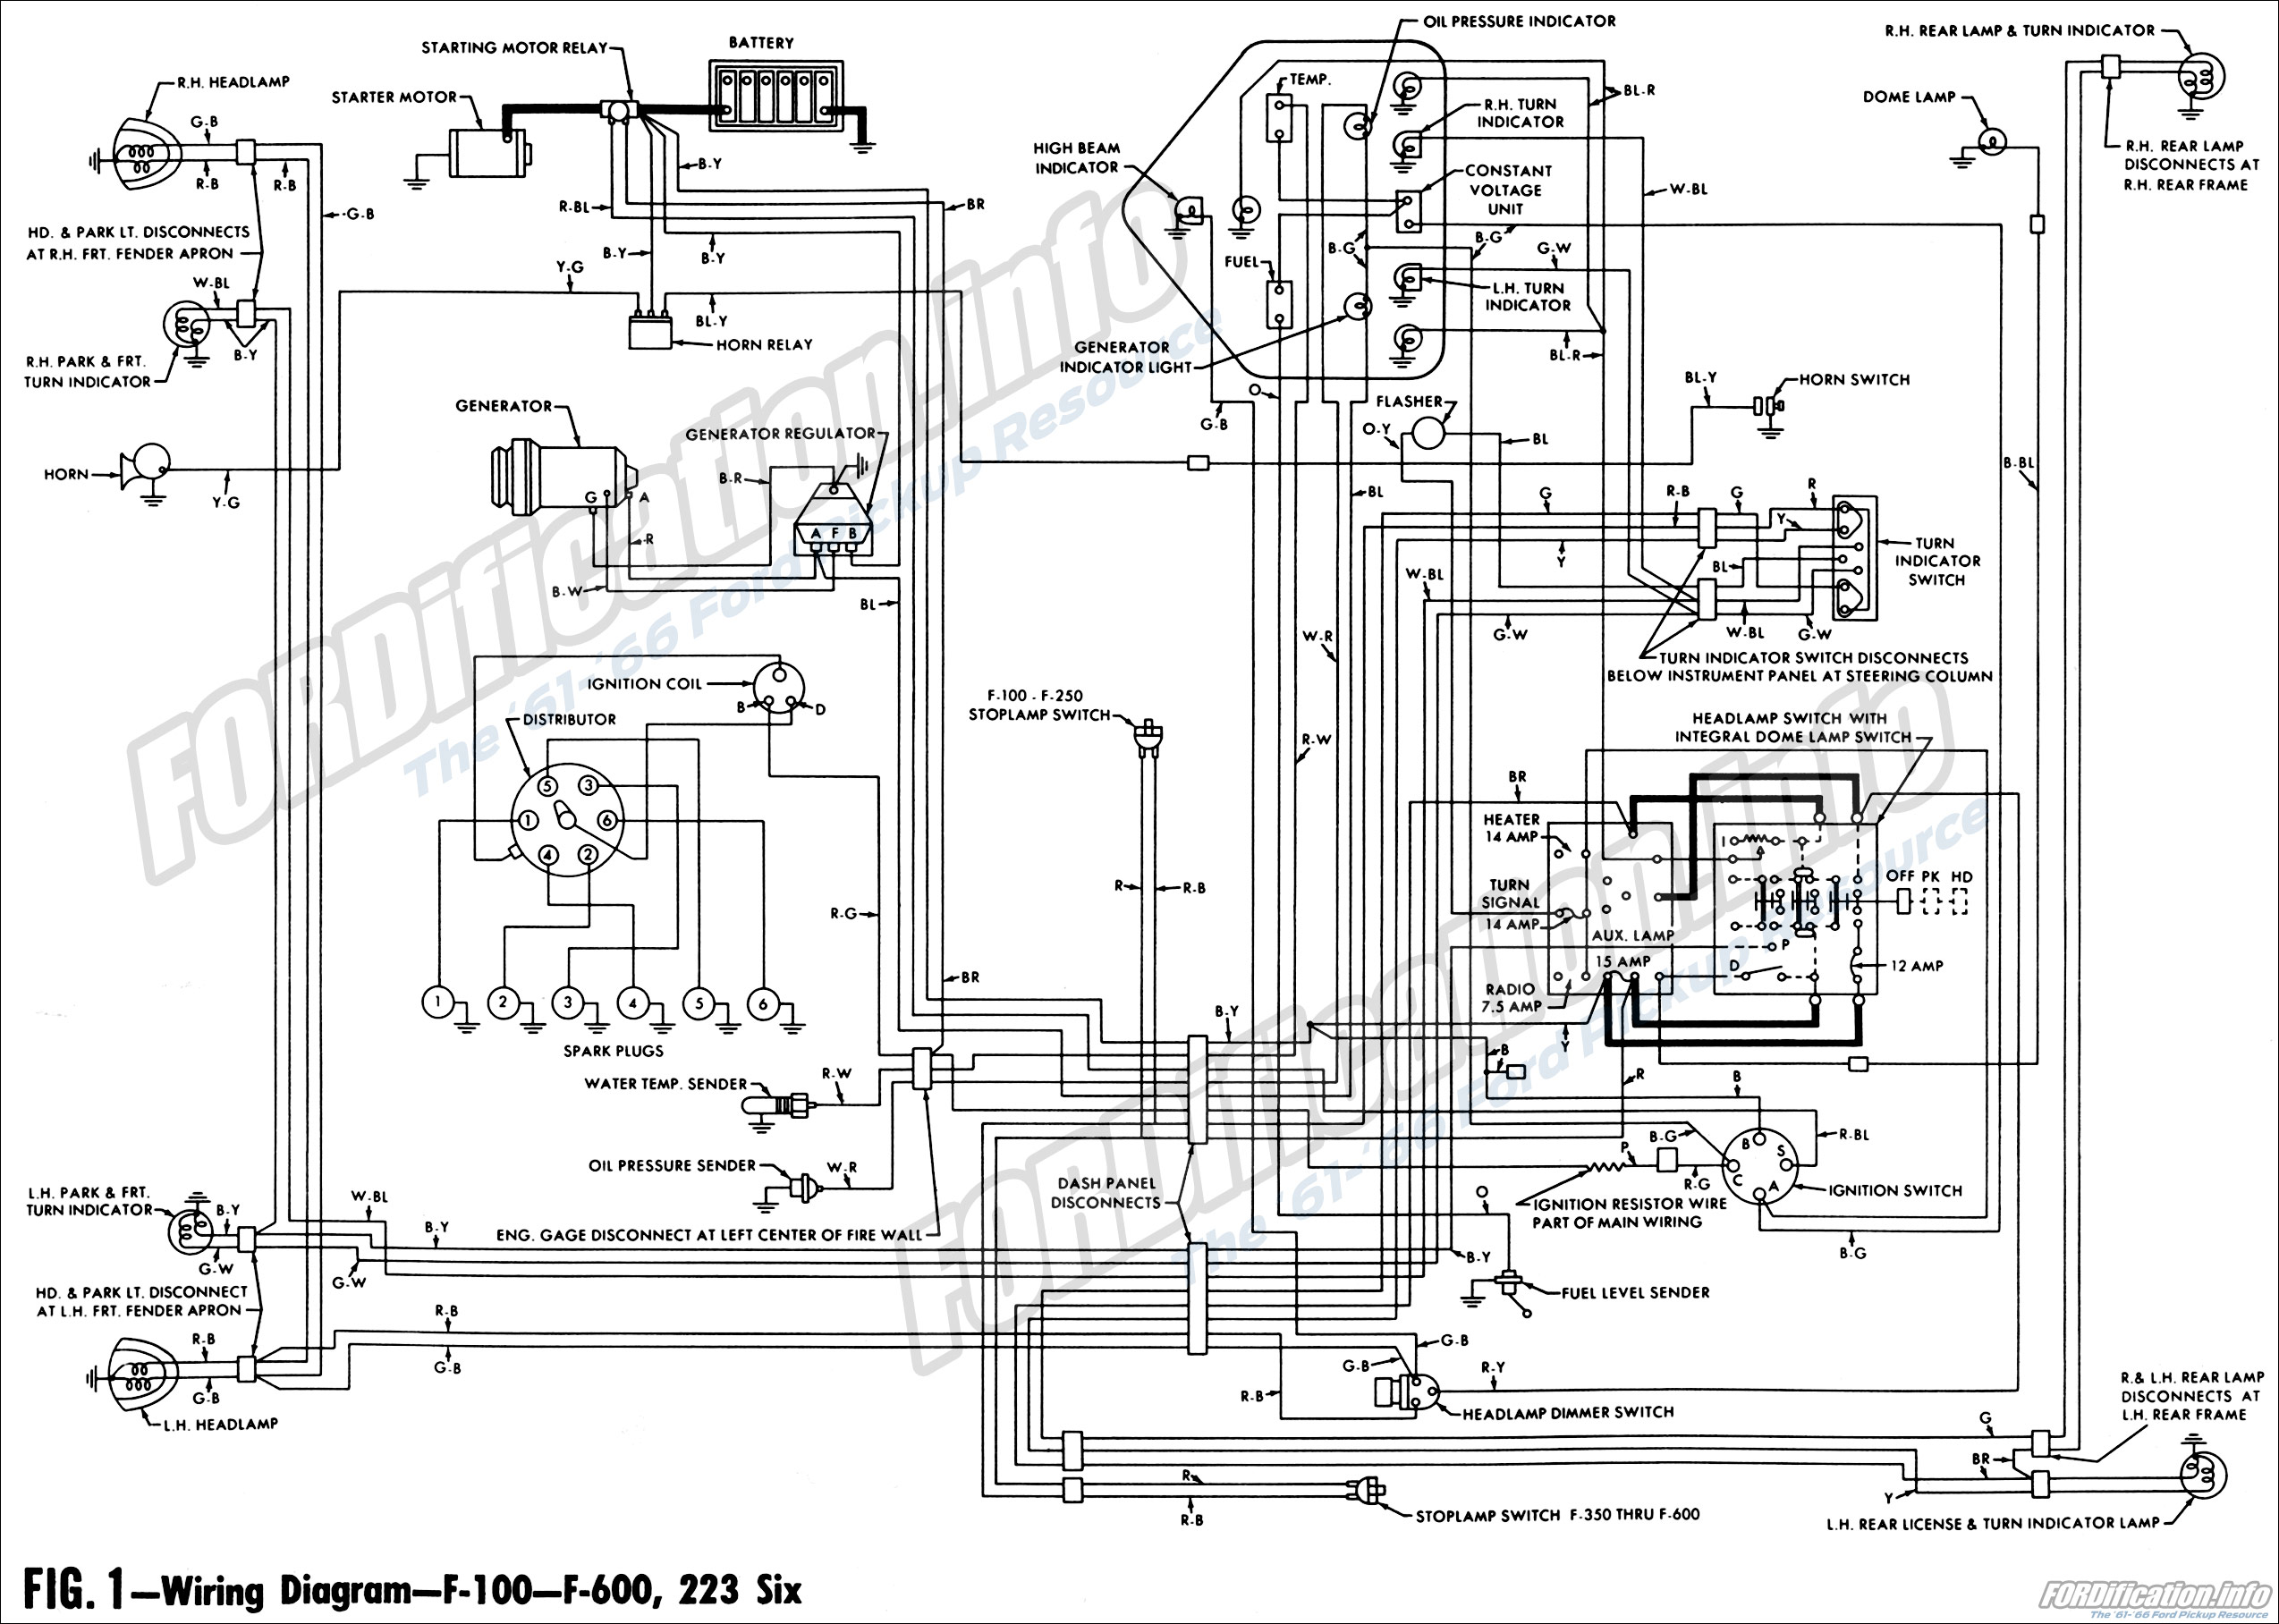 89 ford truck wire diagram ford truck wire diagram 1961 ford truck wiring diagrams - fordification.info - the ...